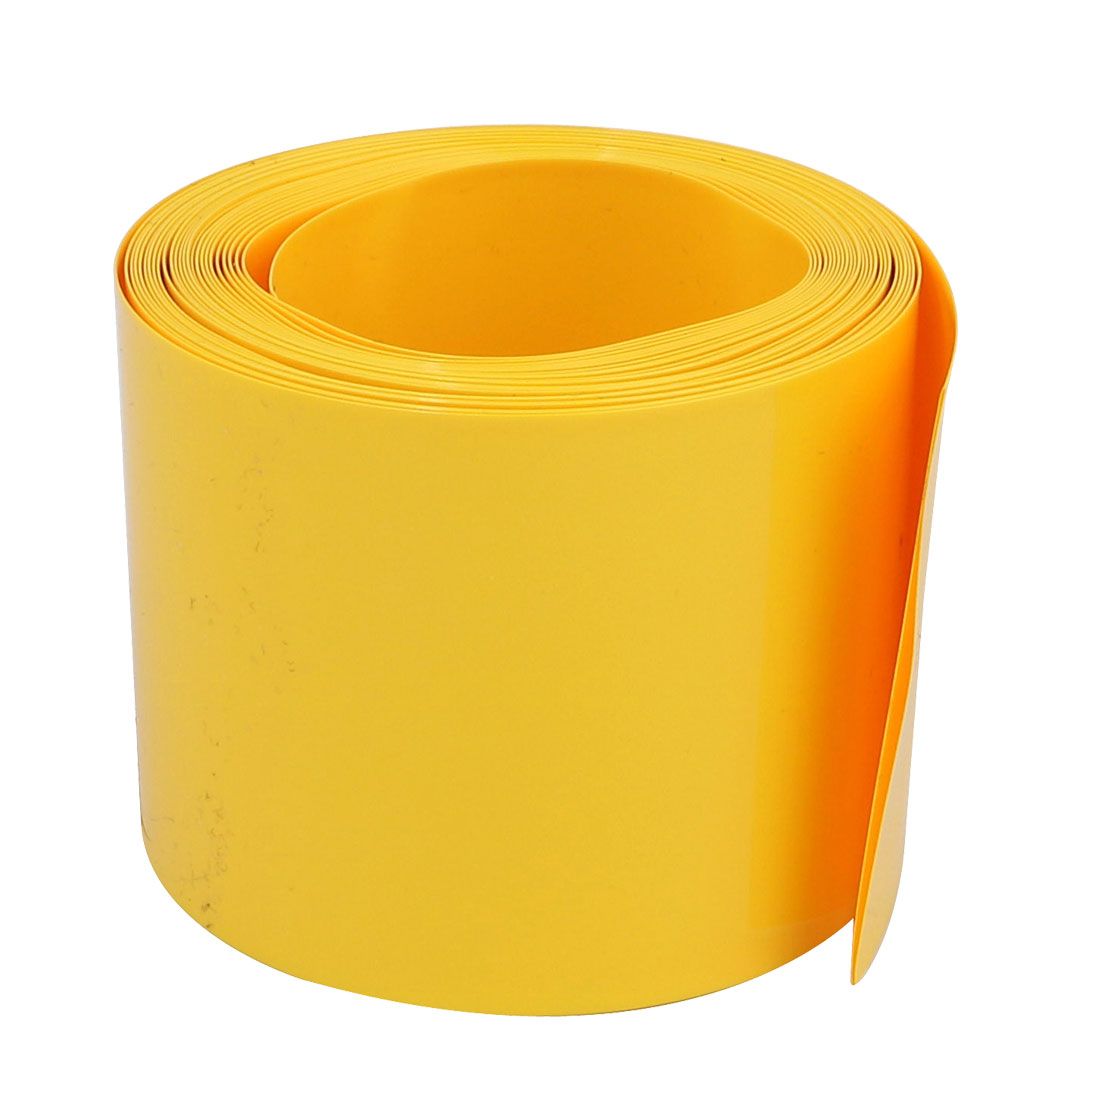 55mm Flat Width 5M Long PVC Heat Shrinkable Tube Yellow for AAA Battery Pack